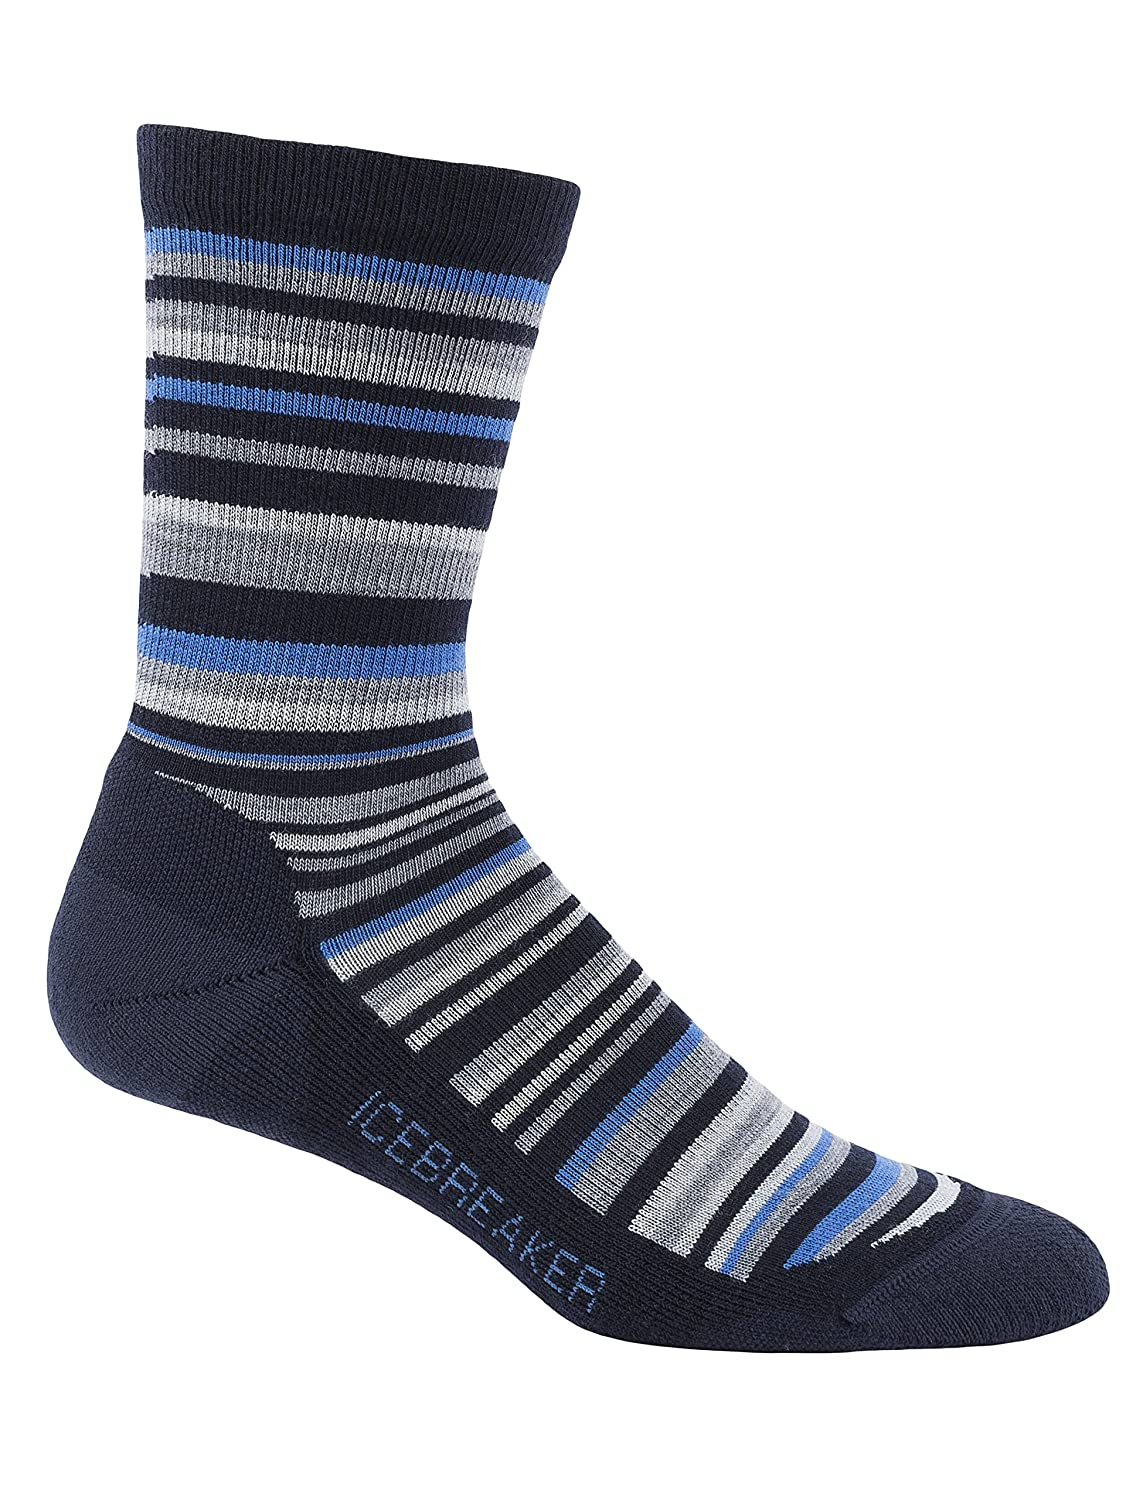 ac41b45d83 Icebreaker Men's Lifestyle Light Crew Socks, Admiral/Pelorus/Metro Hthr,  Small: Amazon.co.uk: Sports & Outdoors